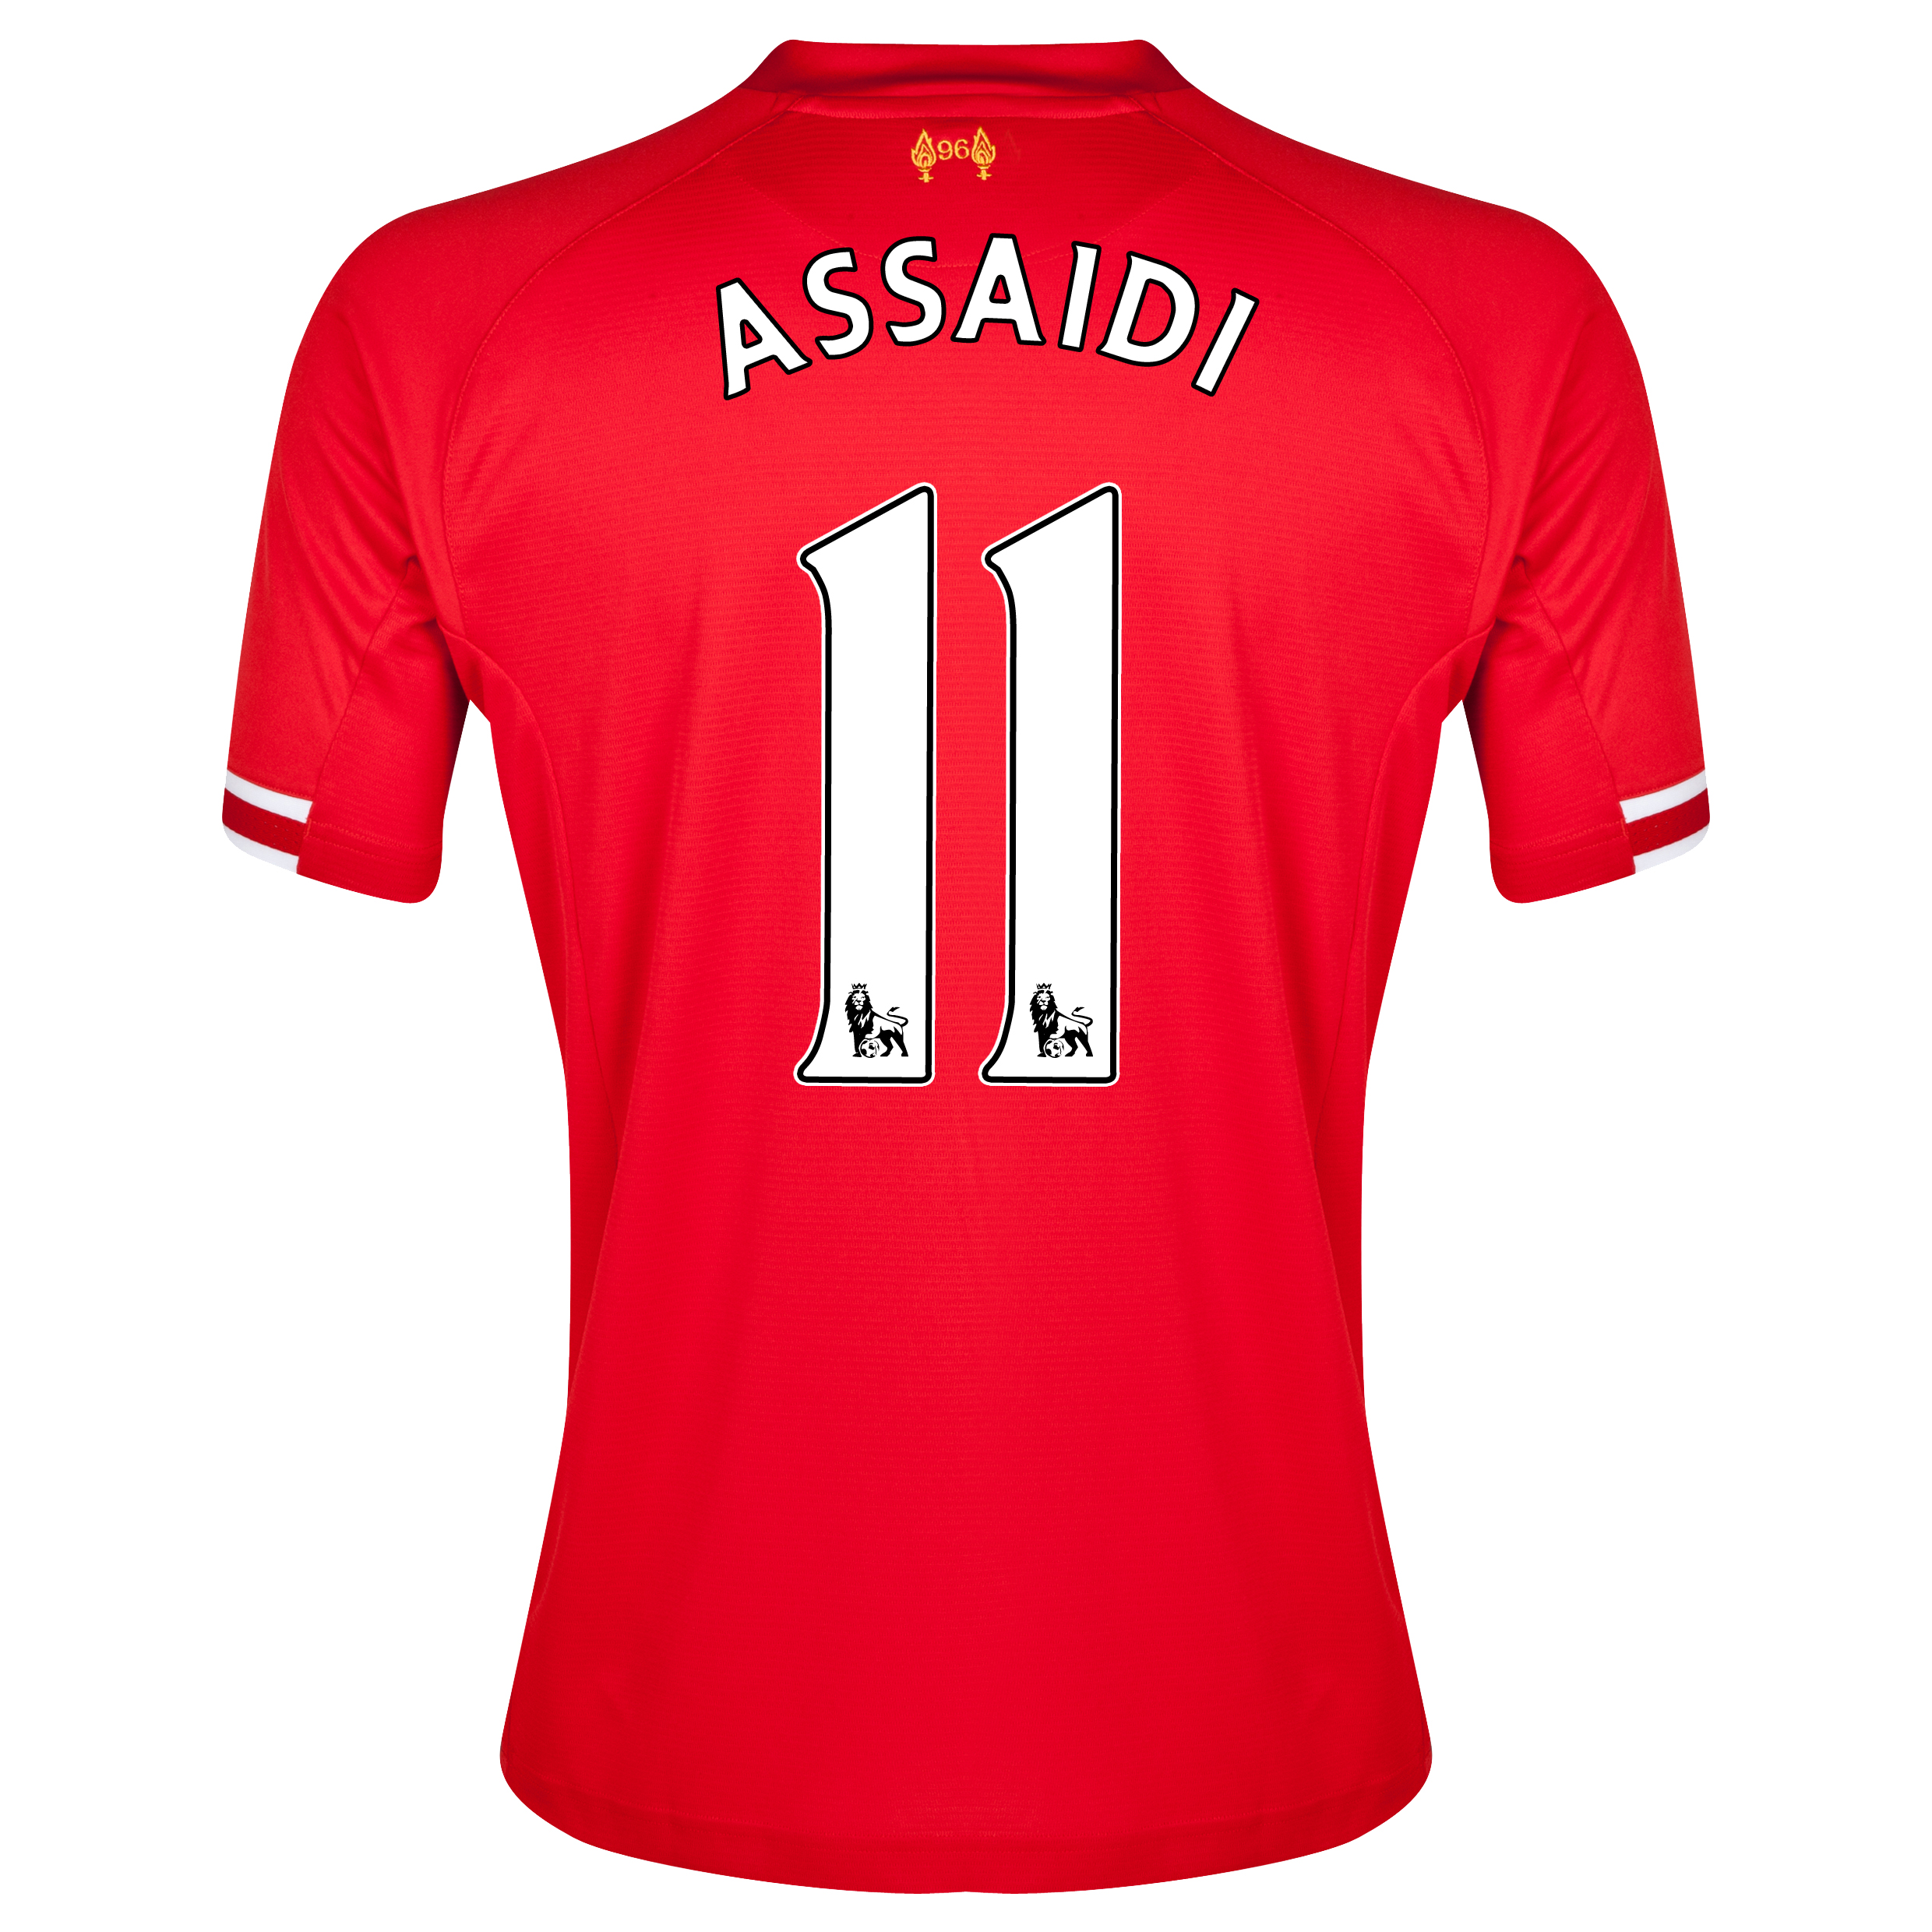 Liverpool Home Shirt 2013/14 with Assaidi 11 printing